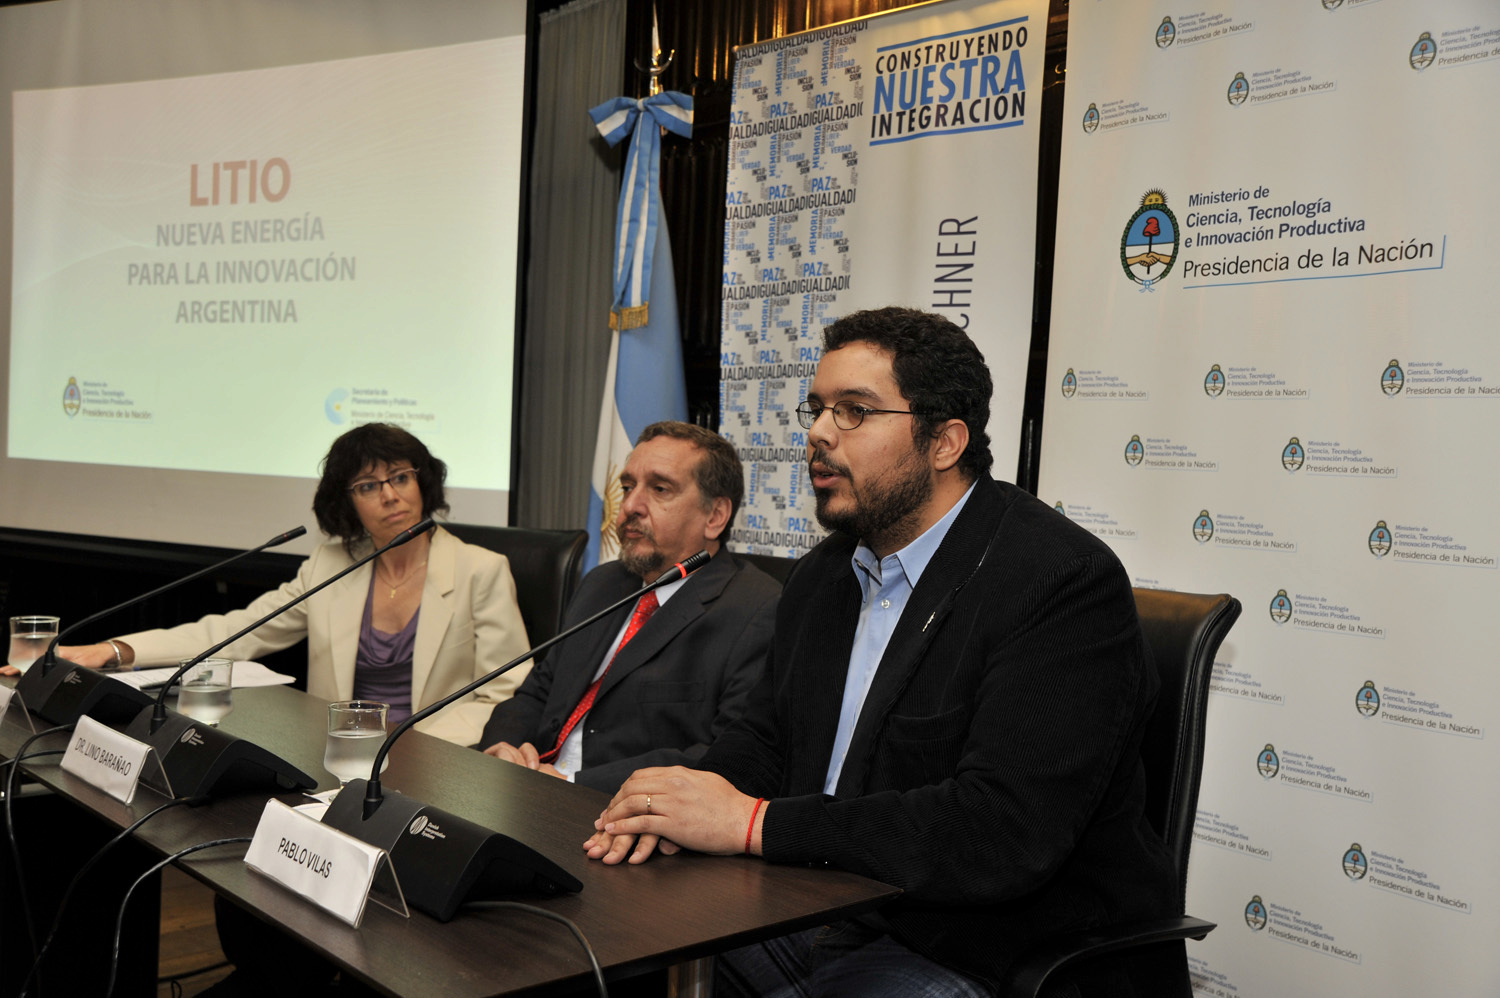 The Argentinean pavilion is inaugurated at BIO 2014